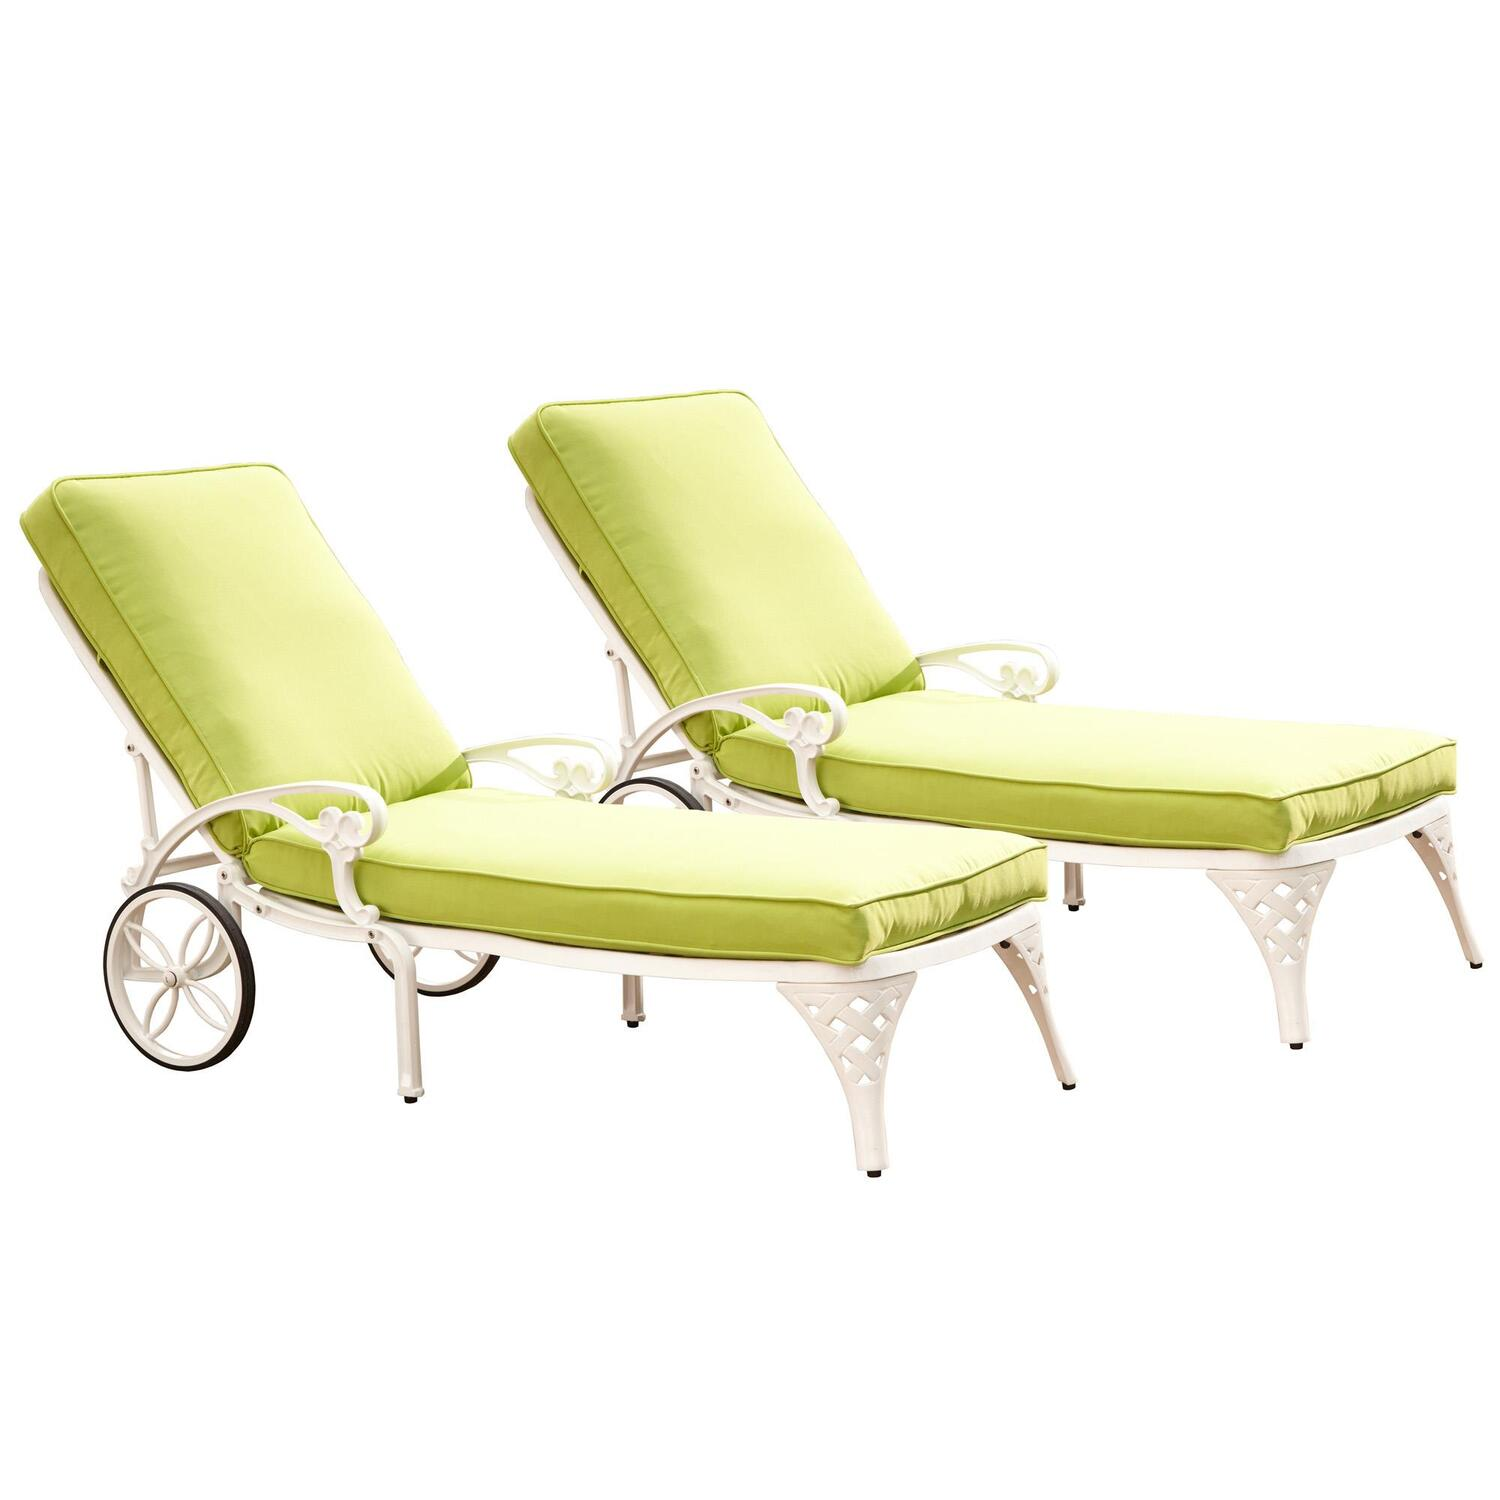 Patio furniture chaise cushions patio chaise cushions for Chaise cushions clearance